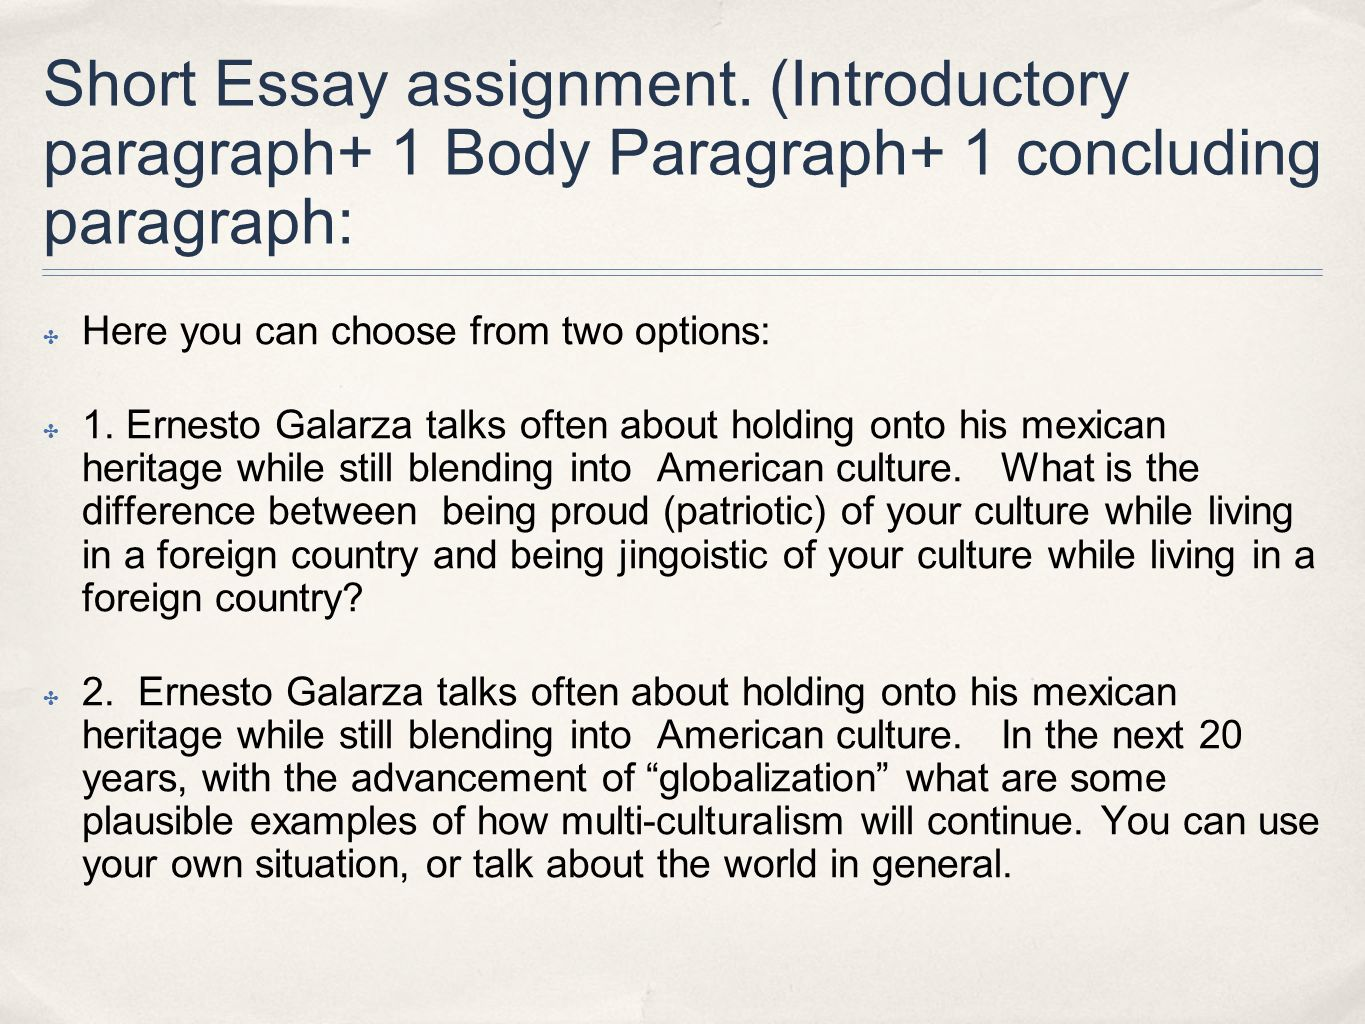 short essay of mexico Can someone proofread my 200 word spanish essay and offer any corrections i'm not too worried about content, but i need to make sure i used the right verb forms and.